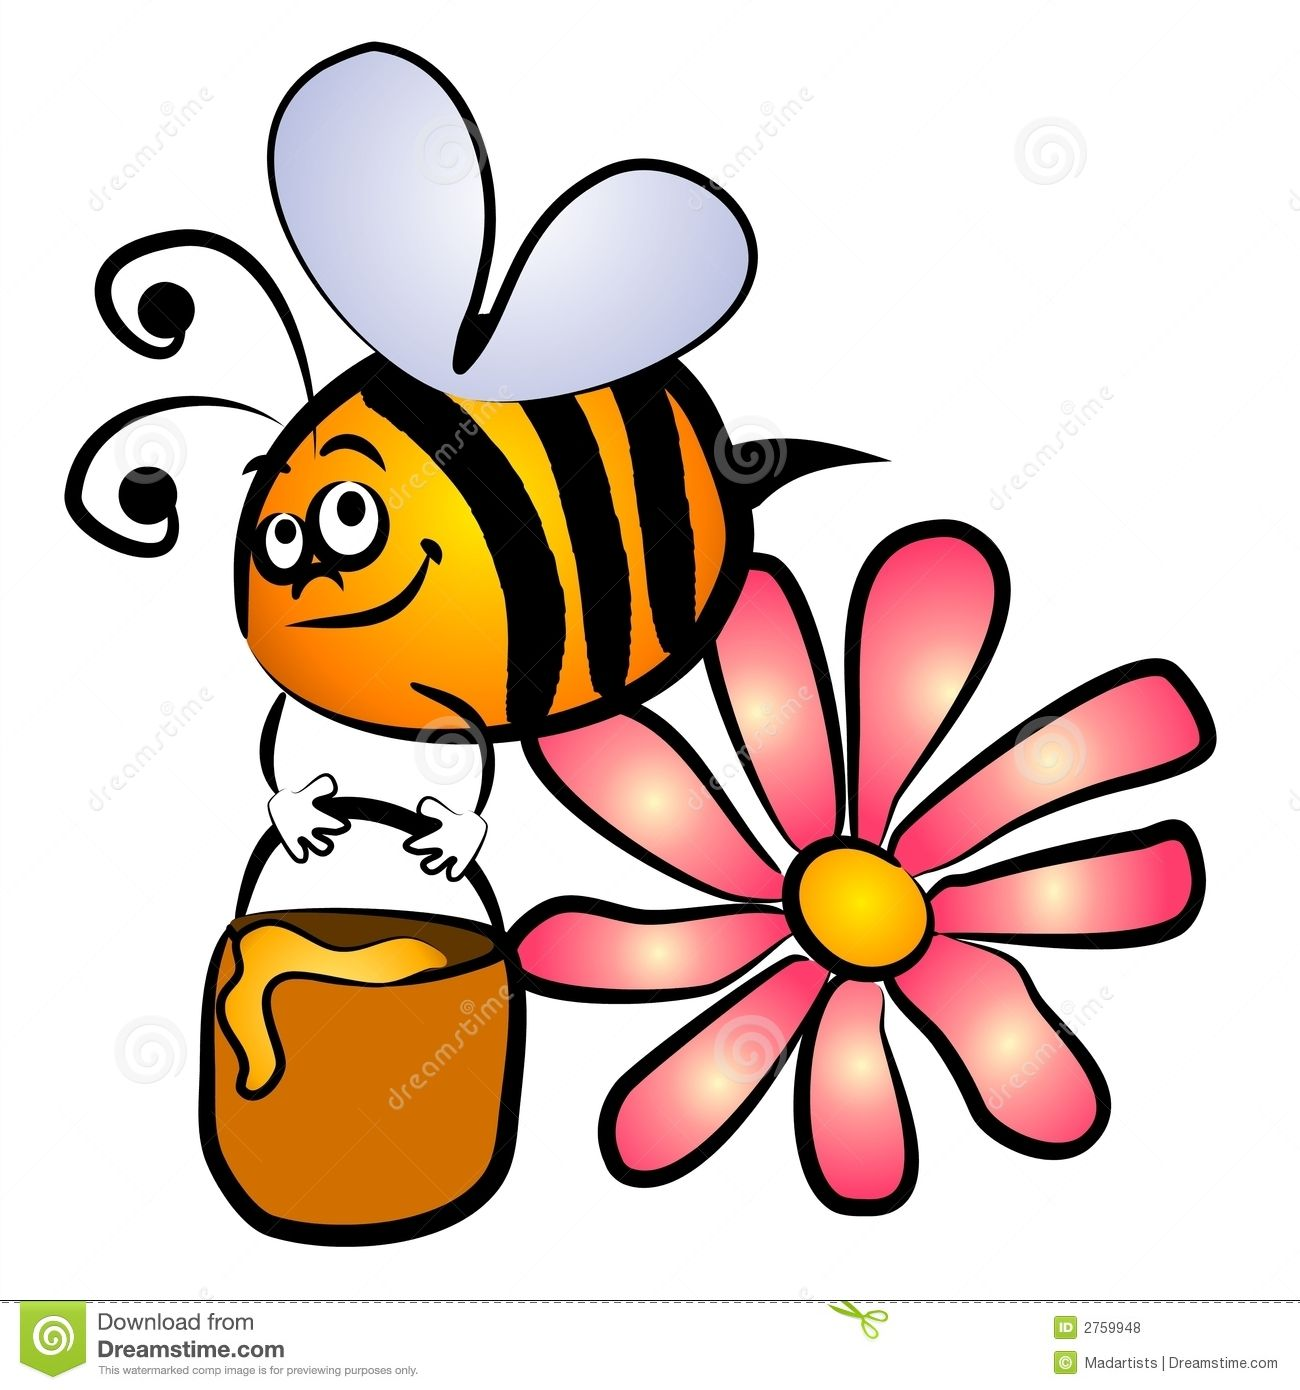 Flying bumble bee clip. Bumblebee clipart sunflower